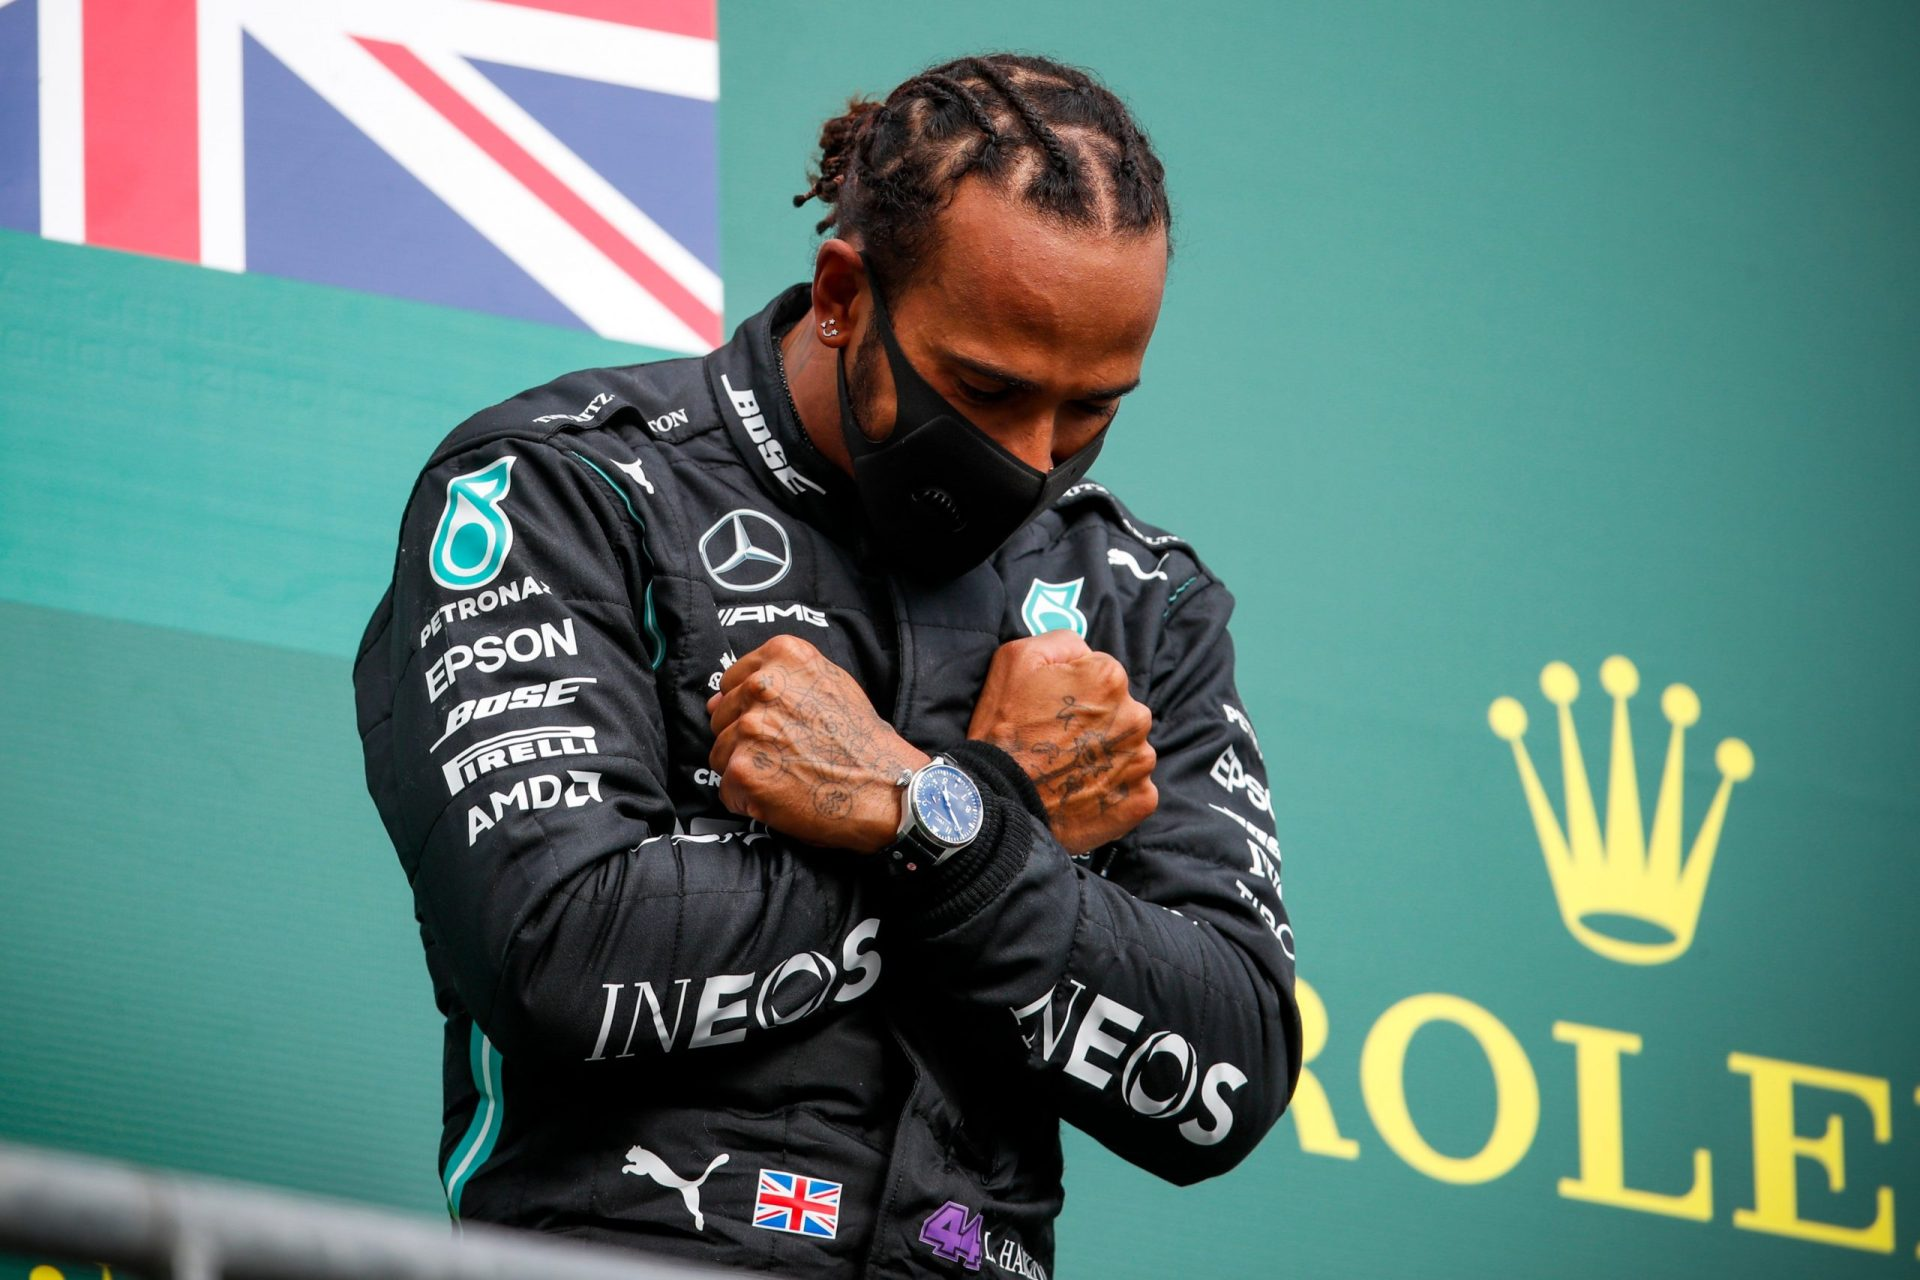 Formula 1: Lewis Hamilton dedicates Belgian GP win to Chadwick Boseman after dominating in Spa - THE SPORTS ROOM